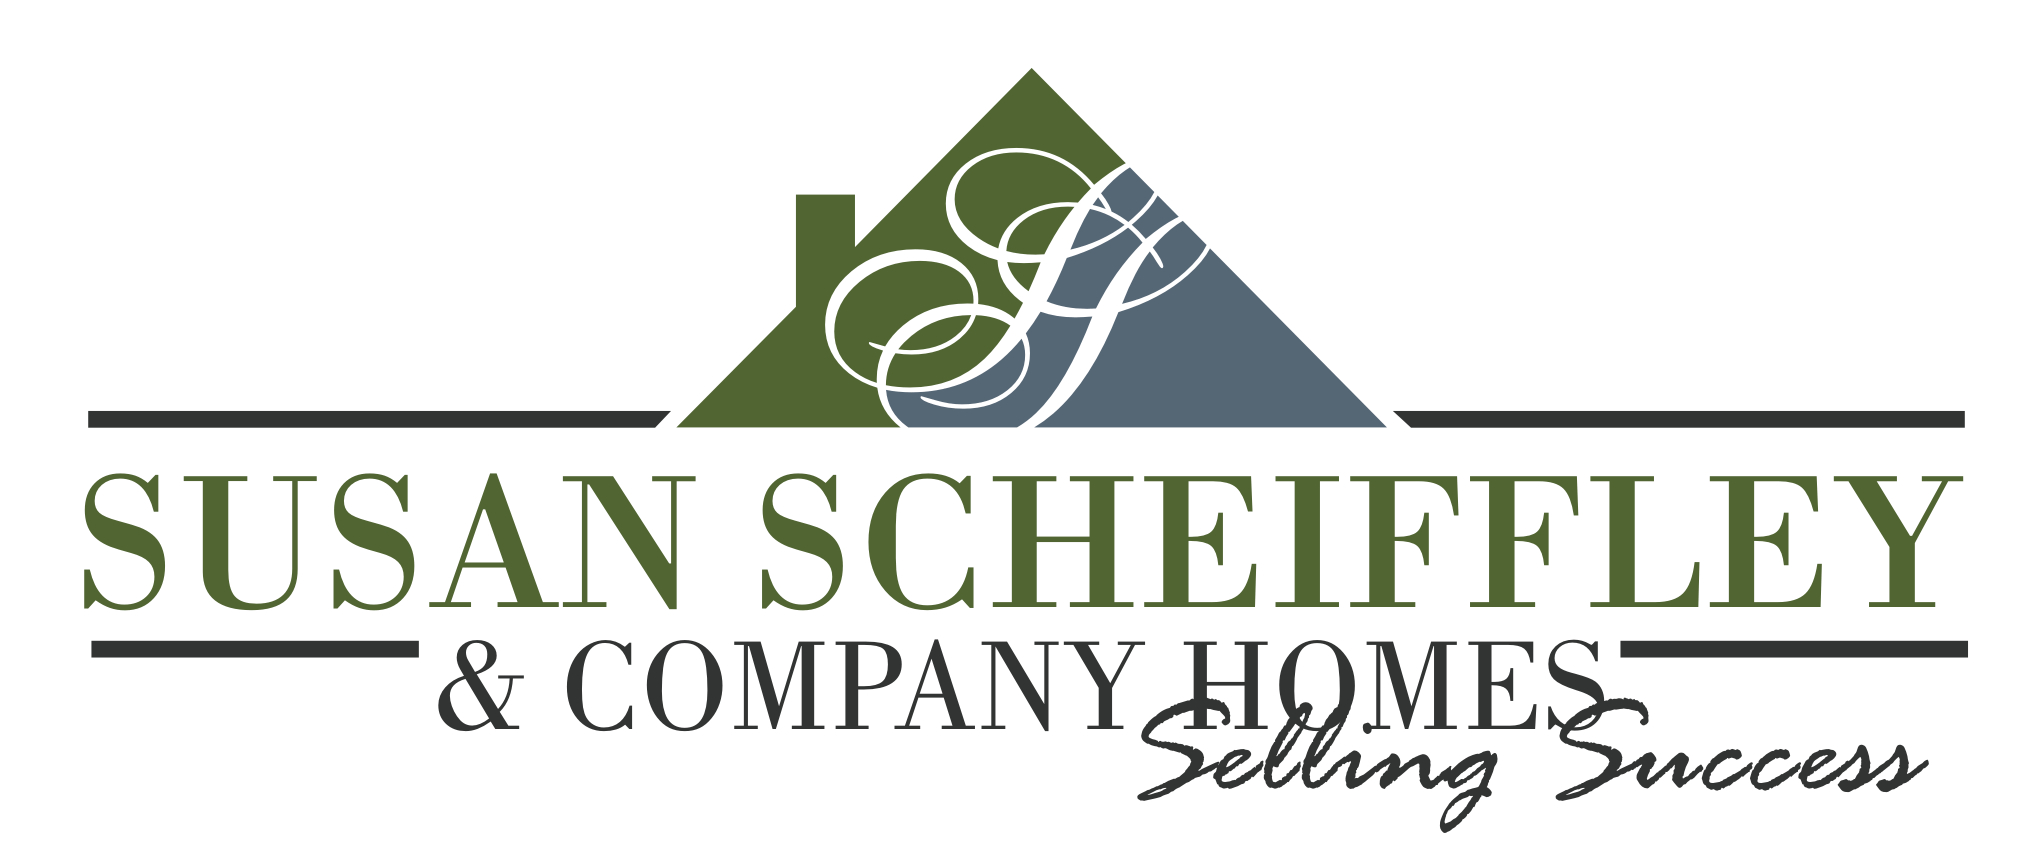 Susan Scheiffley & Company Homes